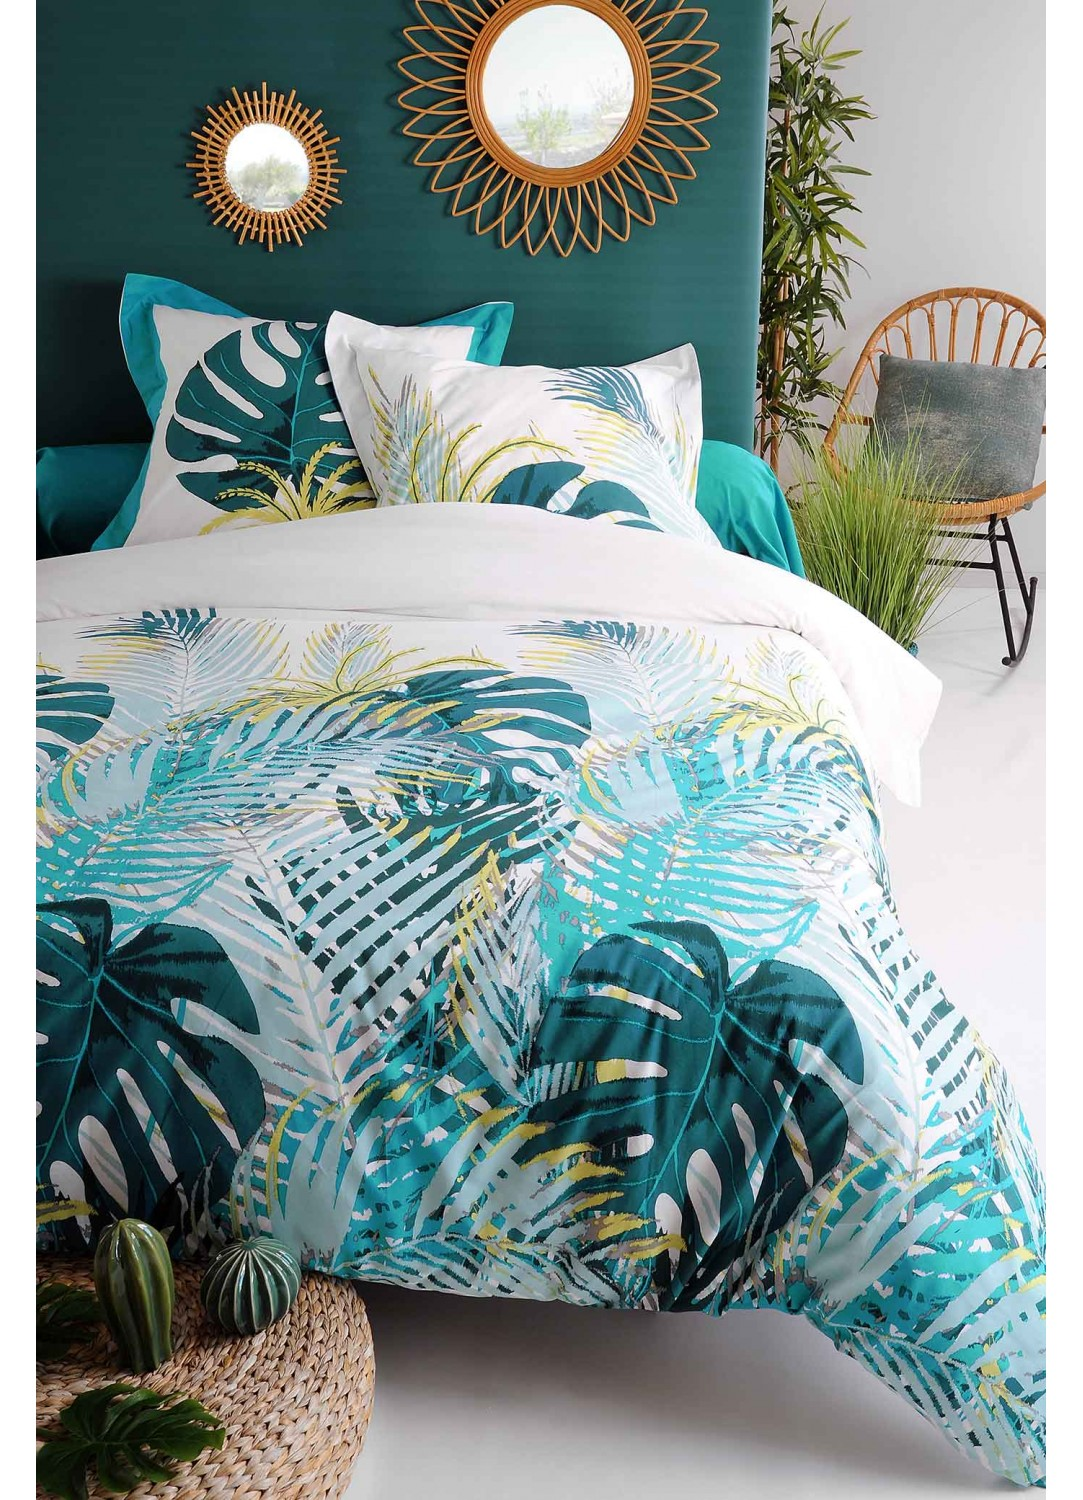 parure de couette inspiration jungle verte turquoise vert homemaison vente en ligne. Black Bedroom Furniture Sets. Home Design Ideas